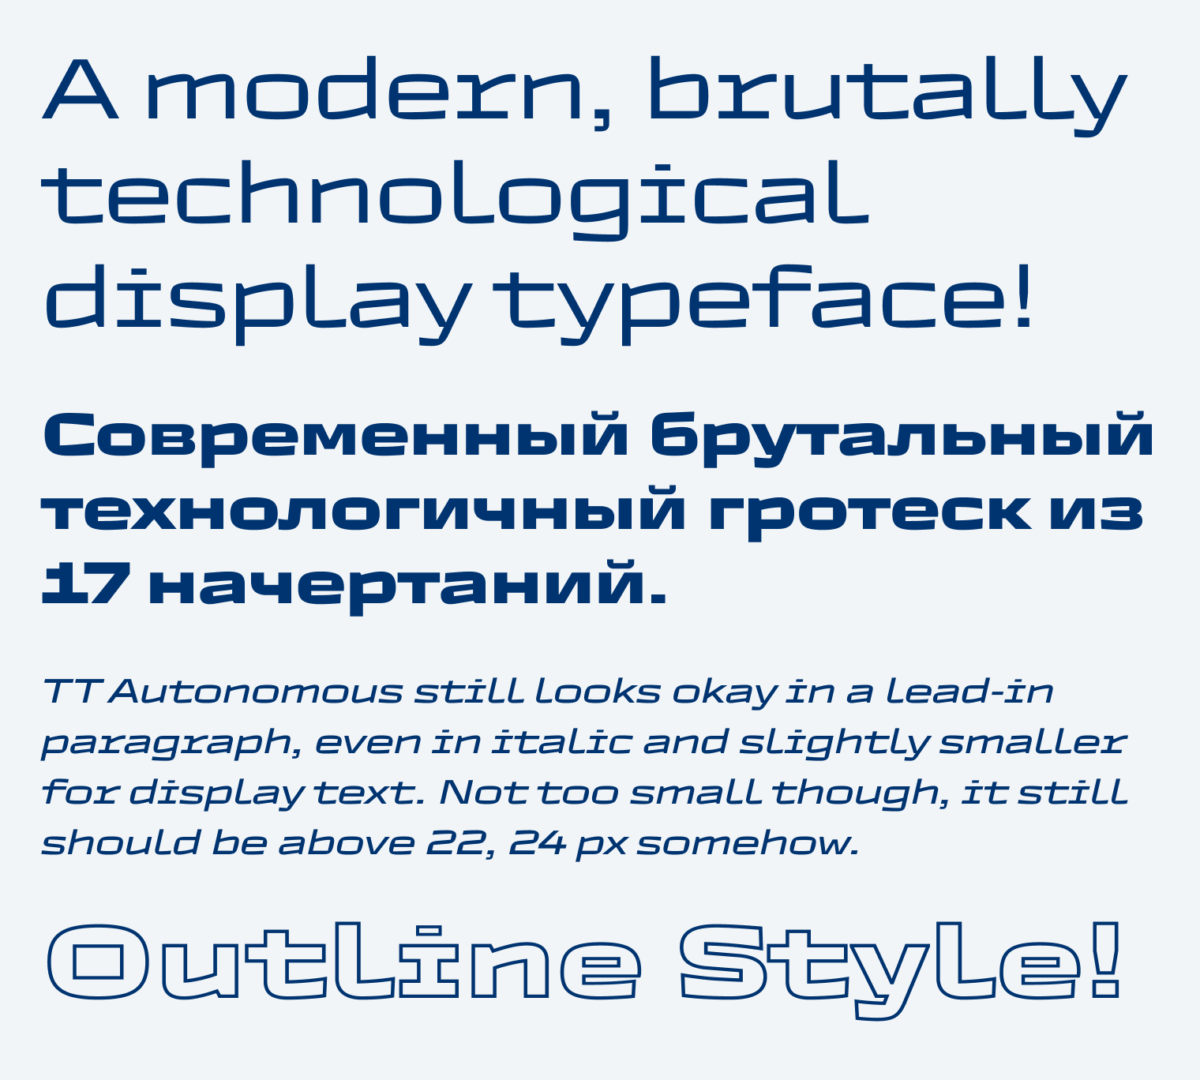 A modern, brutally technological display typeface! ??????????? ?????????? ????????????? ??????? ?? 17 ??????????.TT Autonomous still looks okay in a lead-in paragraph, even in italic and slightly smaller for display text. Not too small though, it still should be above 22, 24 px somehow. And an Outline Style!